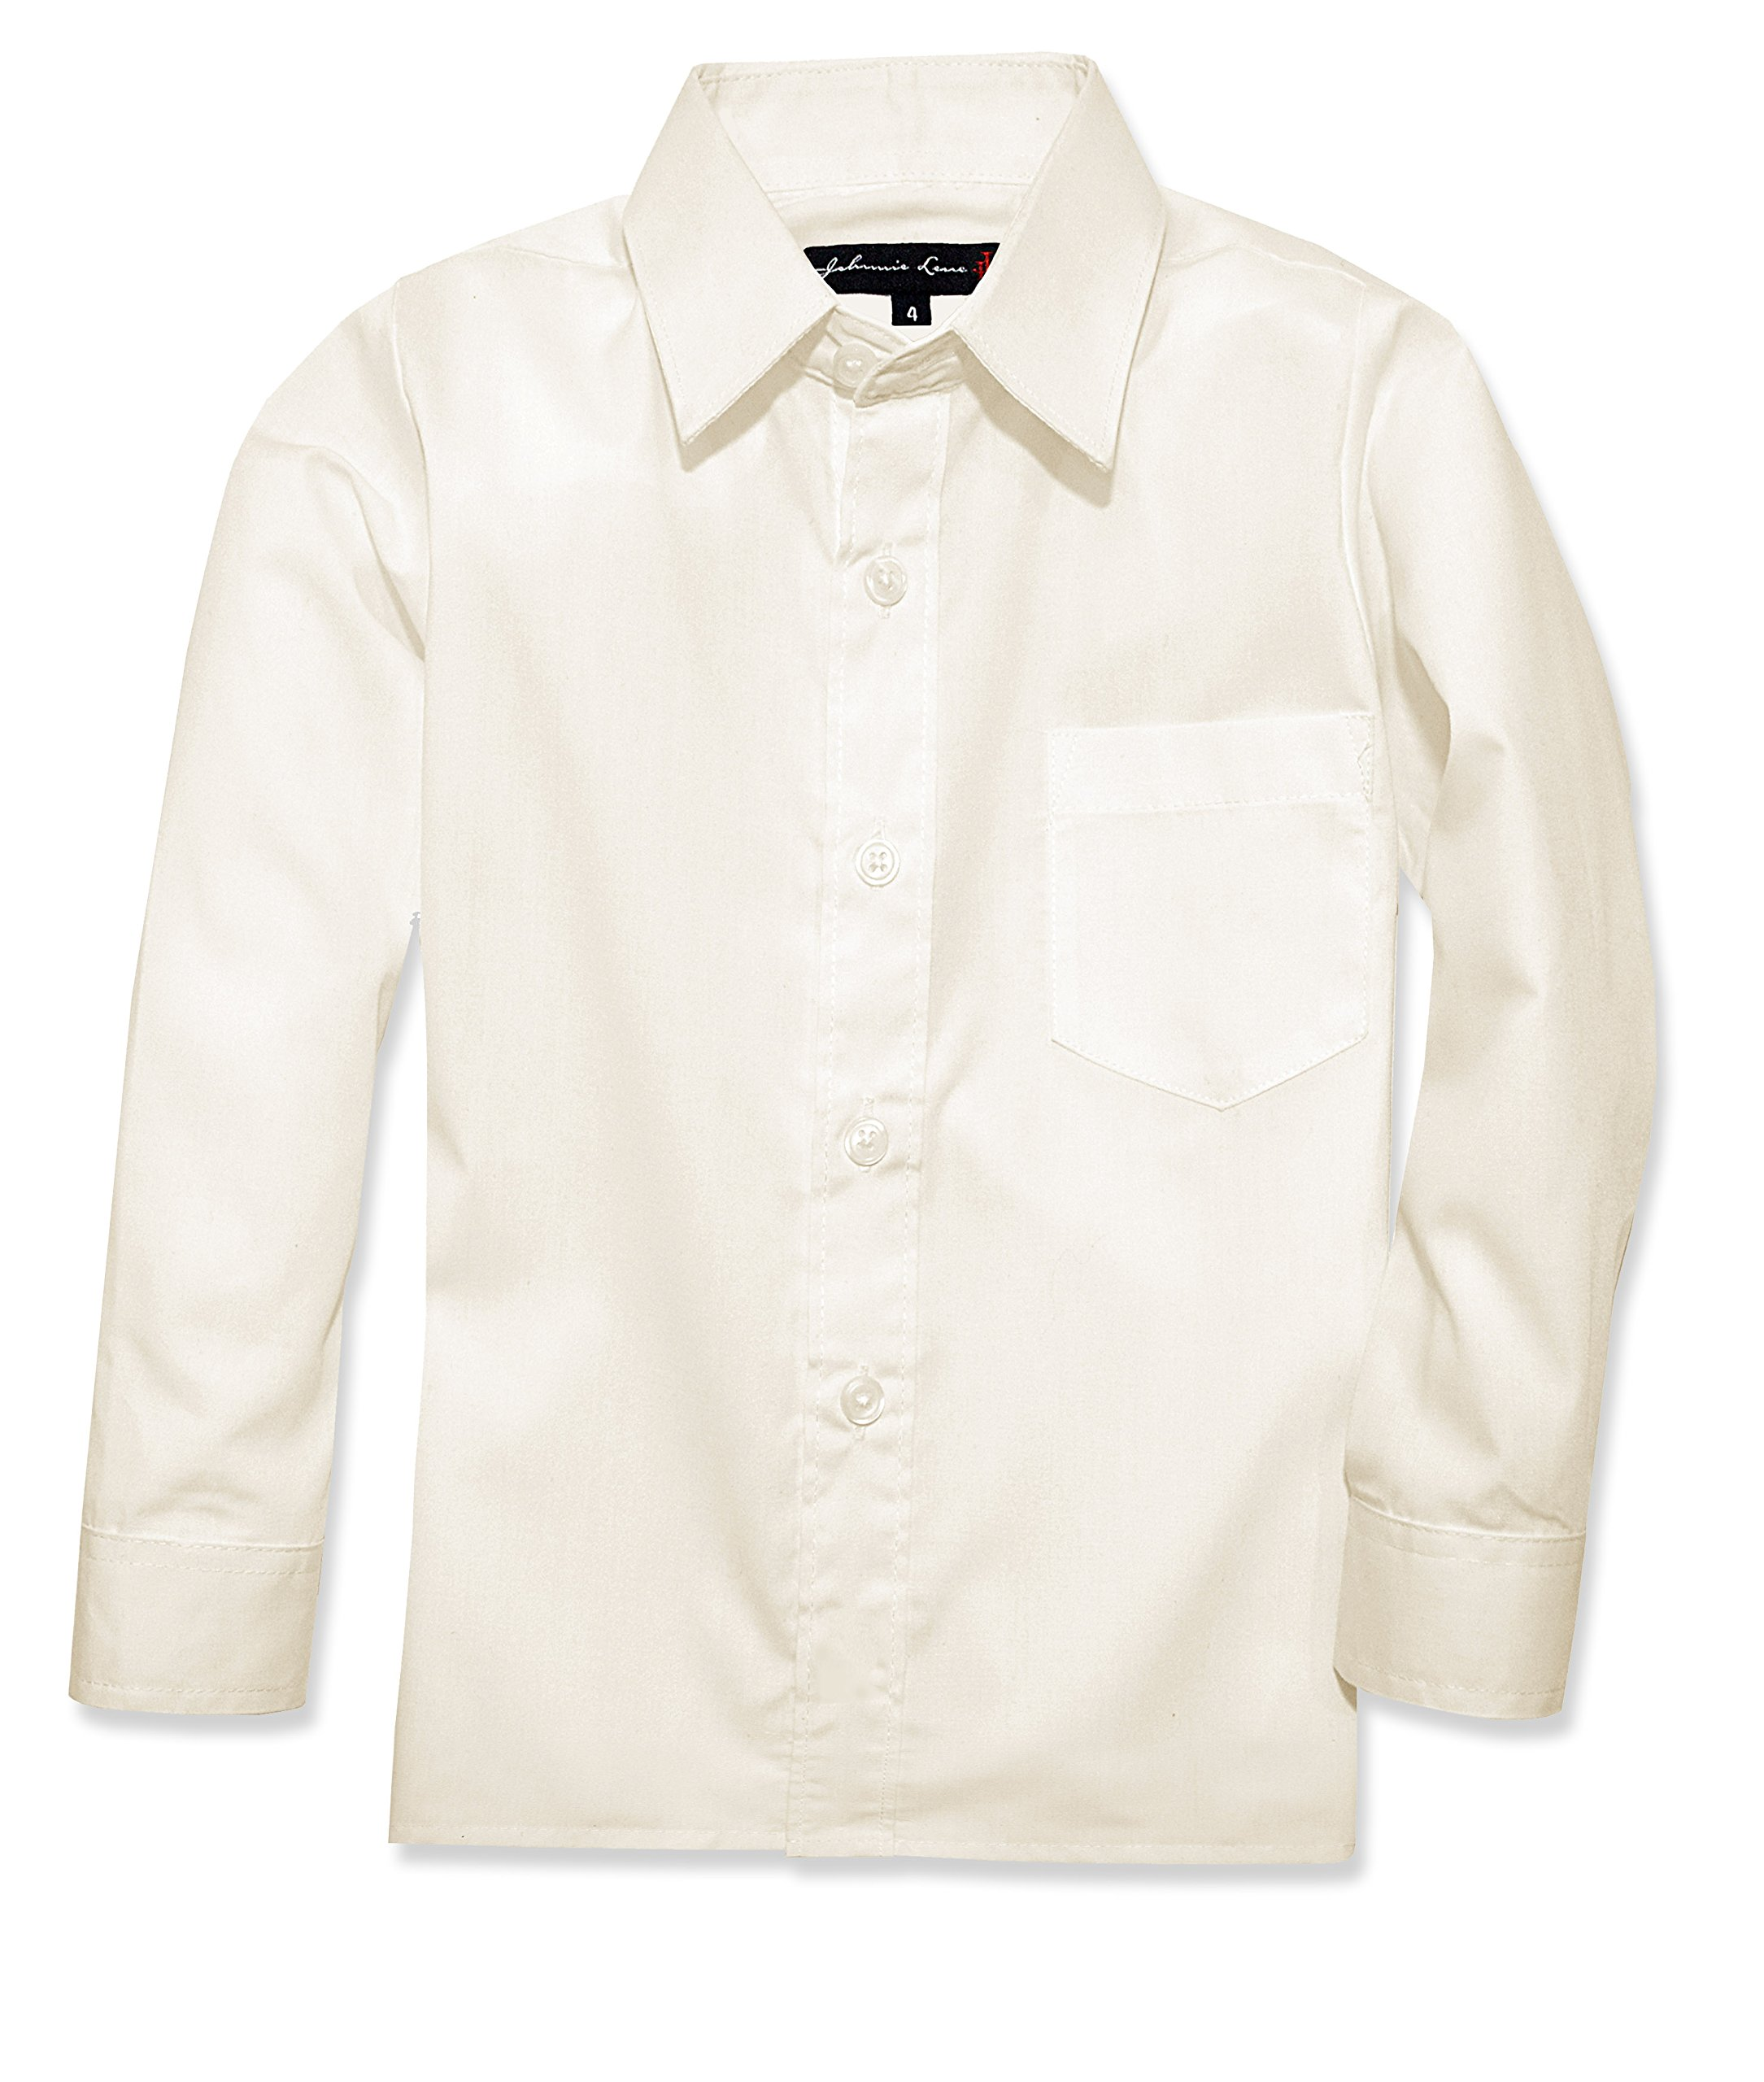 Johnnie Lene Boy's Long Sleeves Dress Shirt from Baby to Teen JJL32 (7, Ivory)